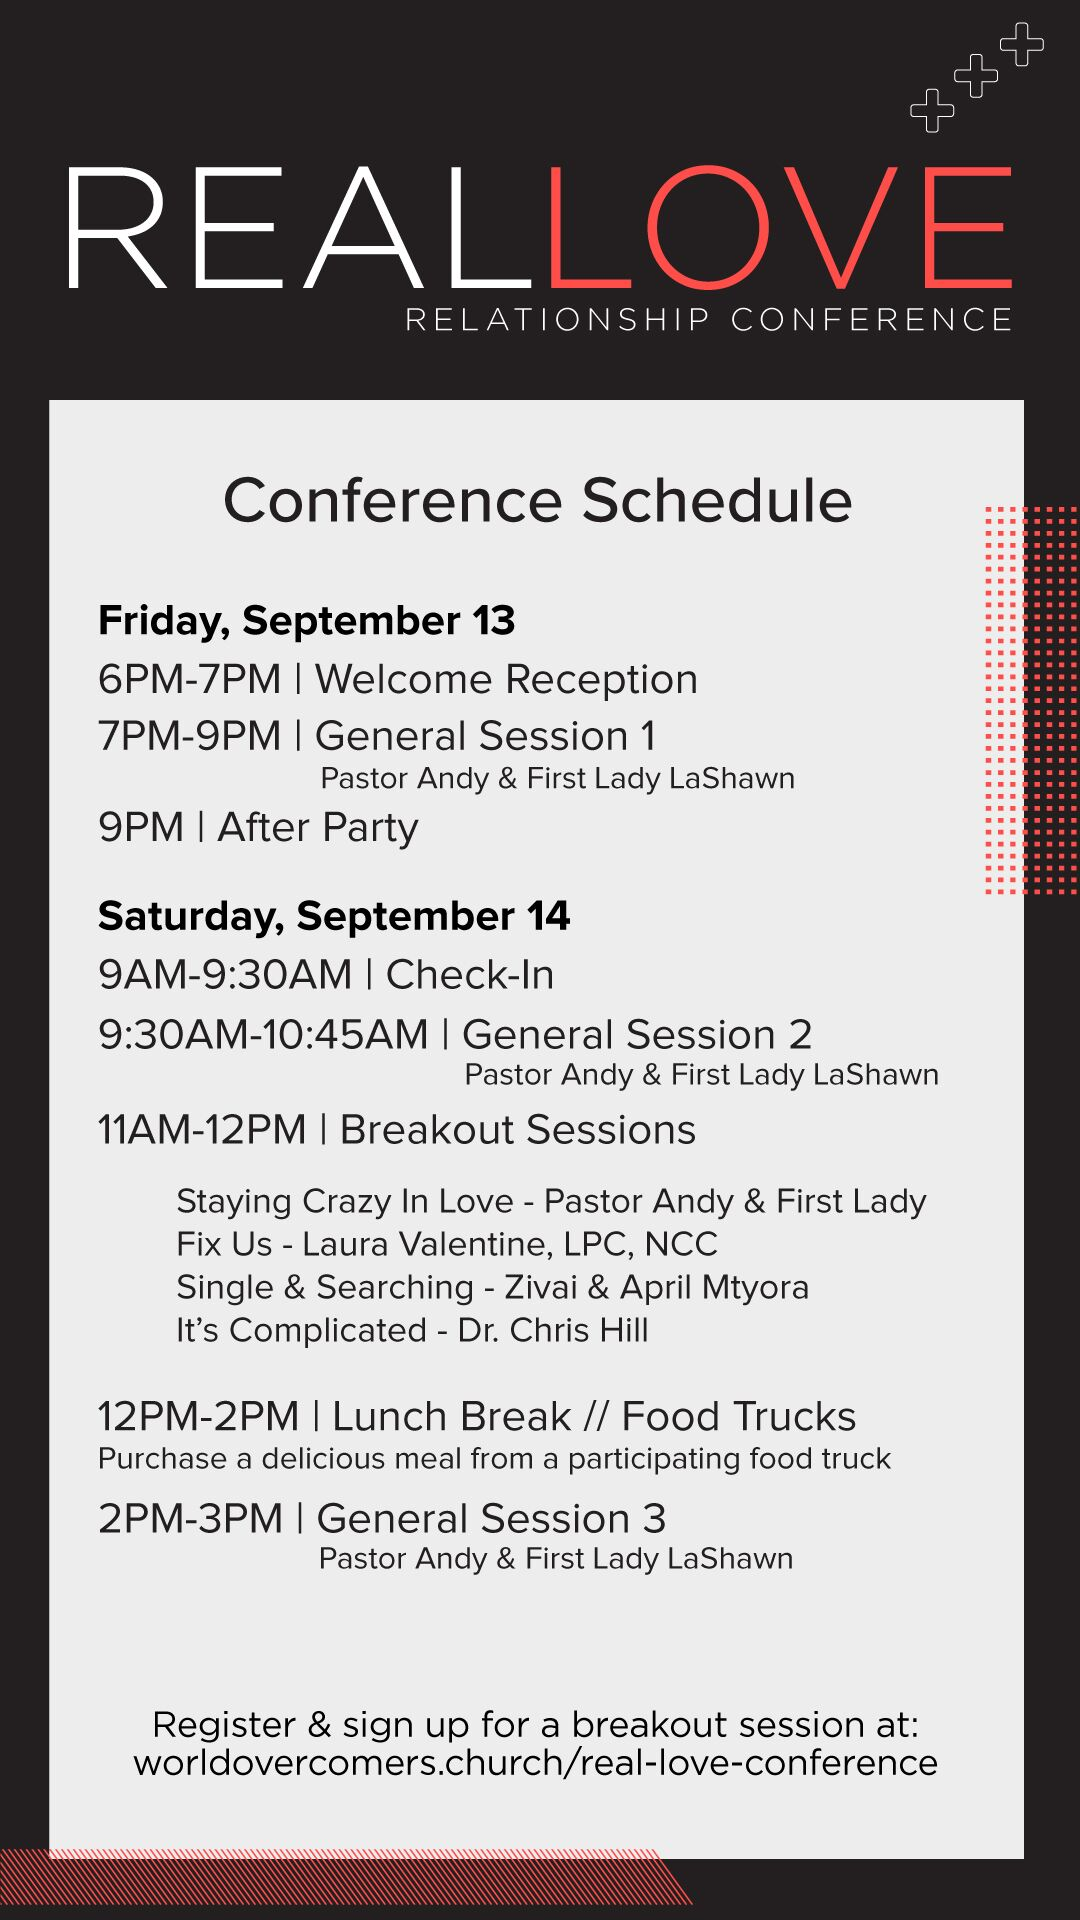 REAL LOVE CONFERENCE SCHEDULE 2019